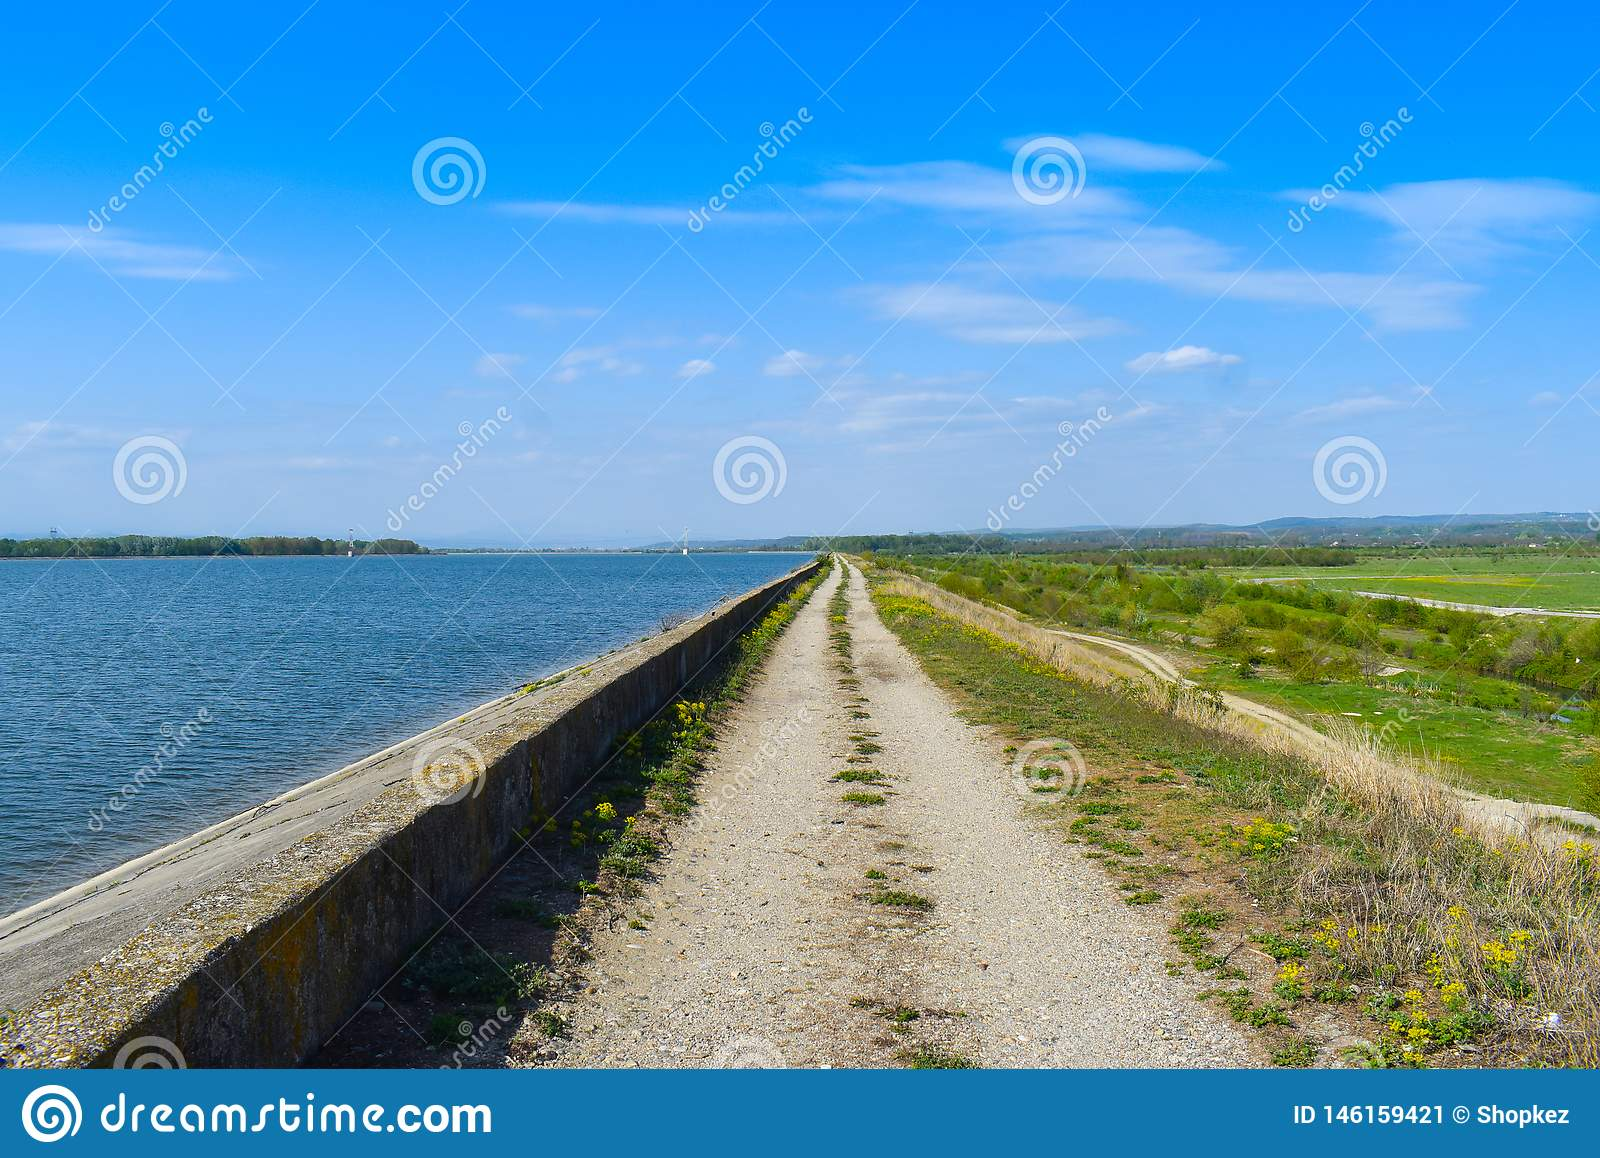 Country road along the lake dam in a sunny summer day with perfect blue sky